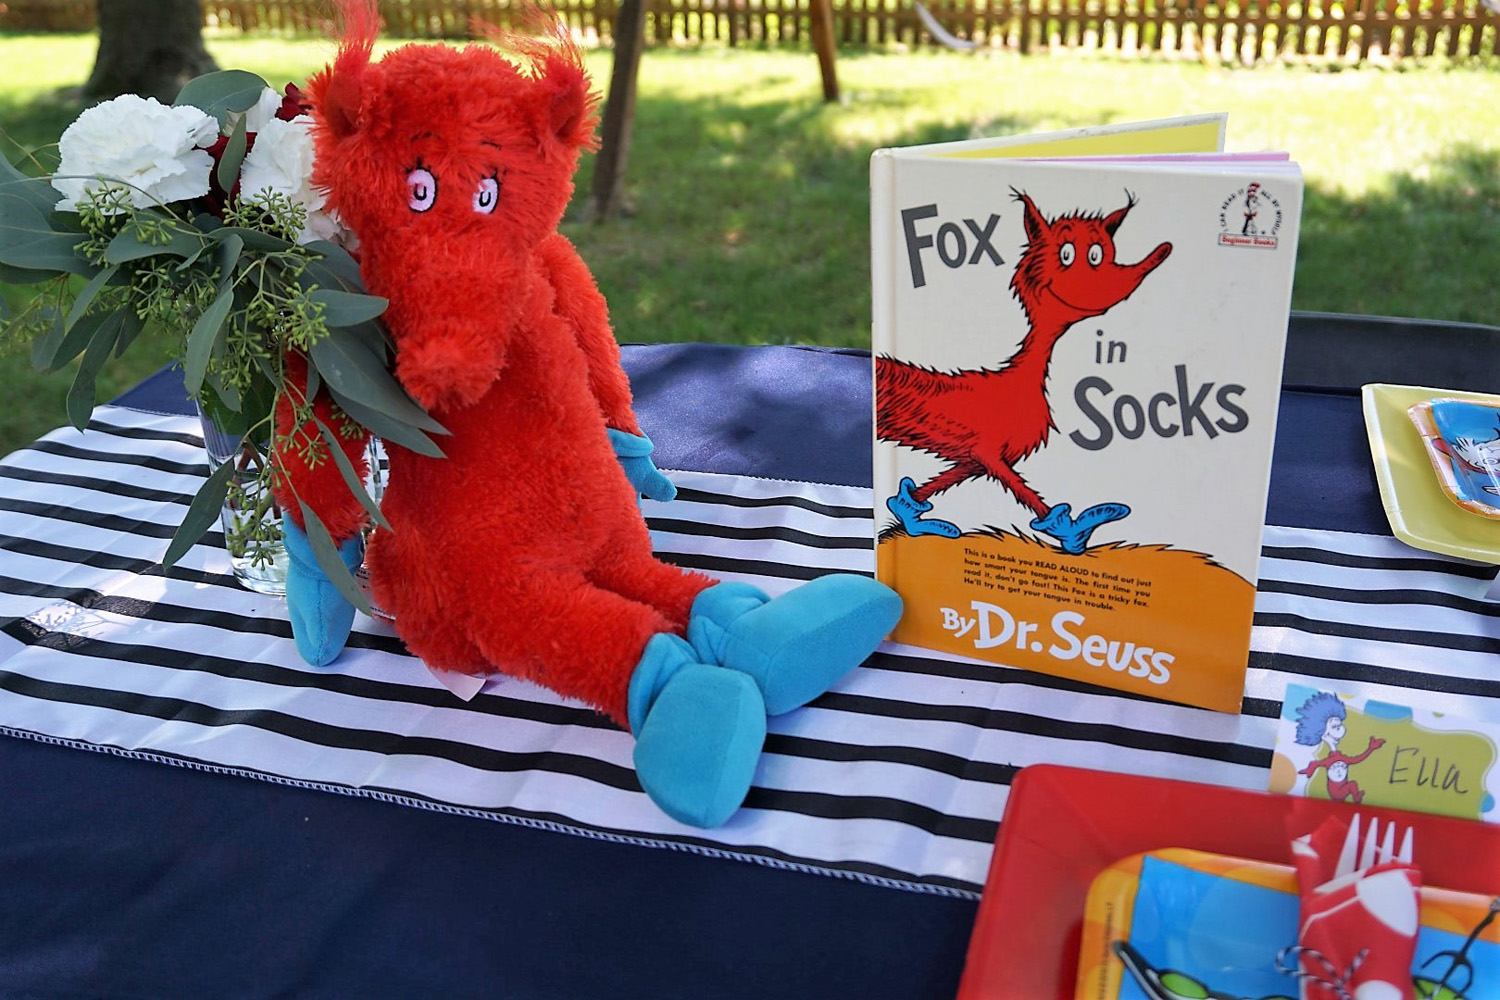 Fox in Socks as a centerpiece for a Dr. Seuss baby shower.